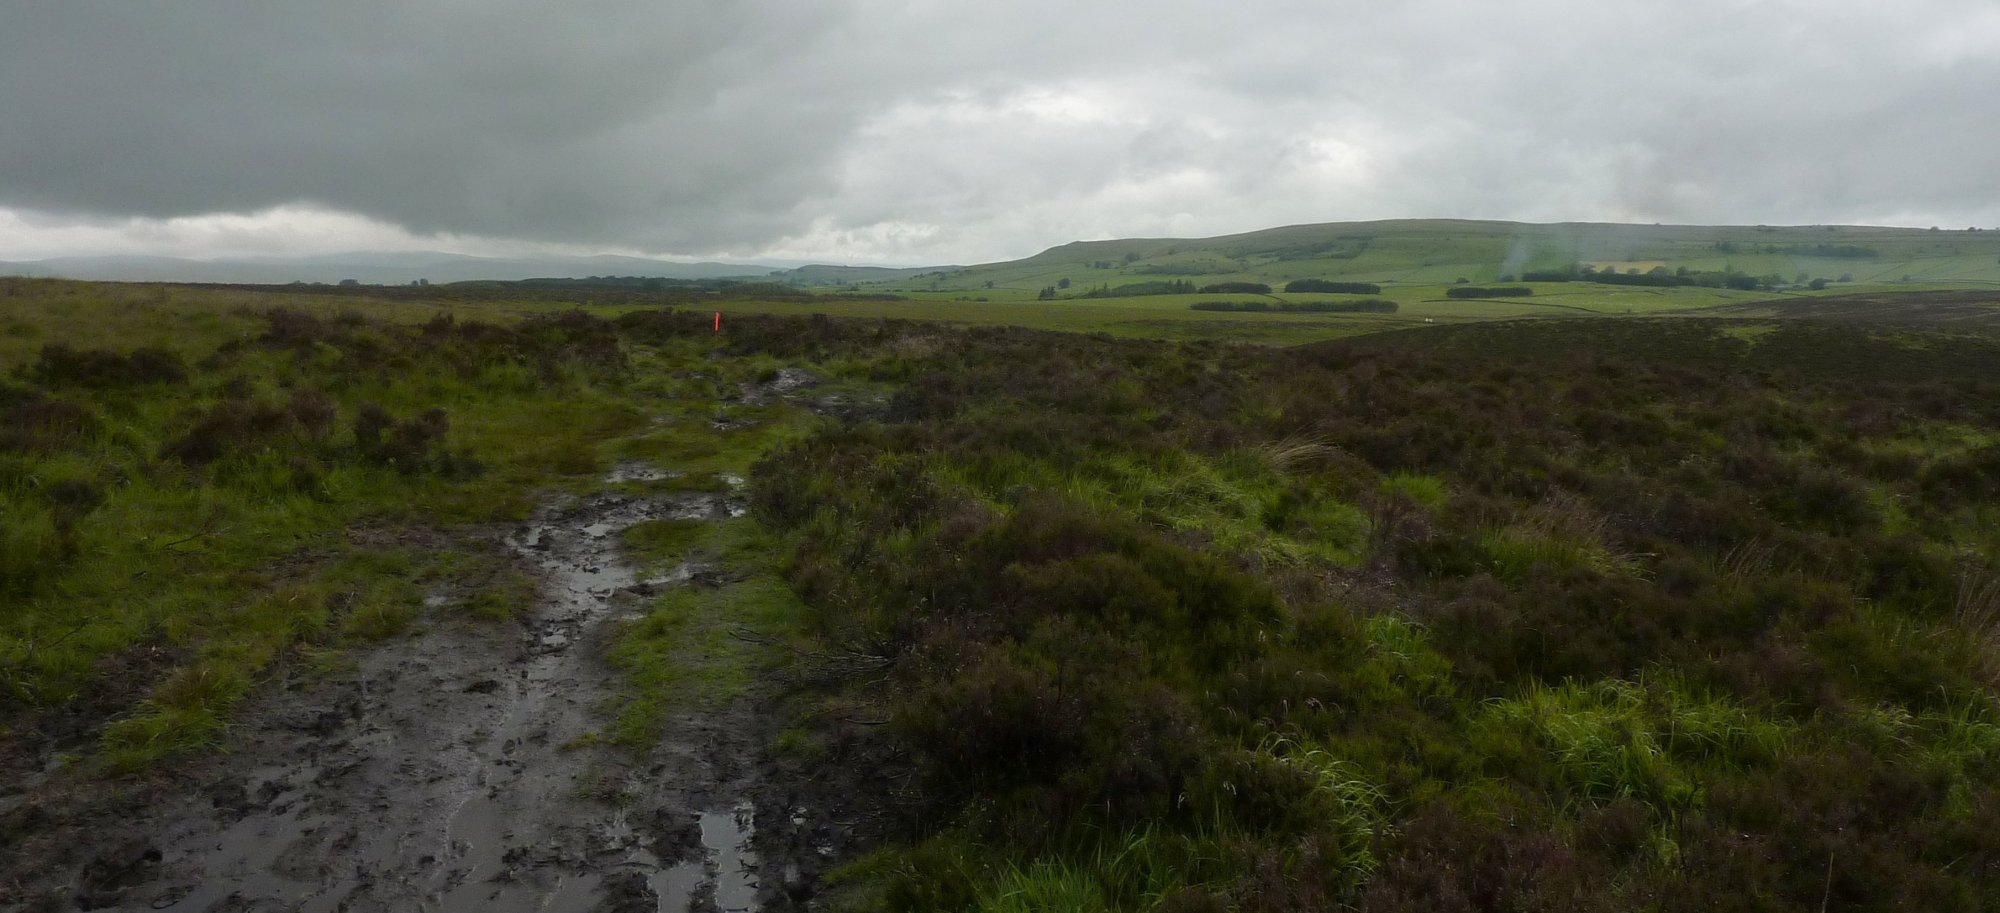 The path around Sunbiggin, somewhat wet and muddy